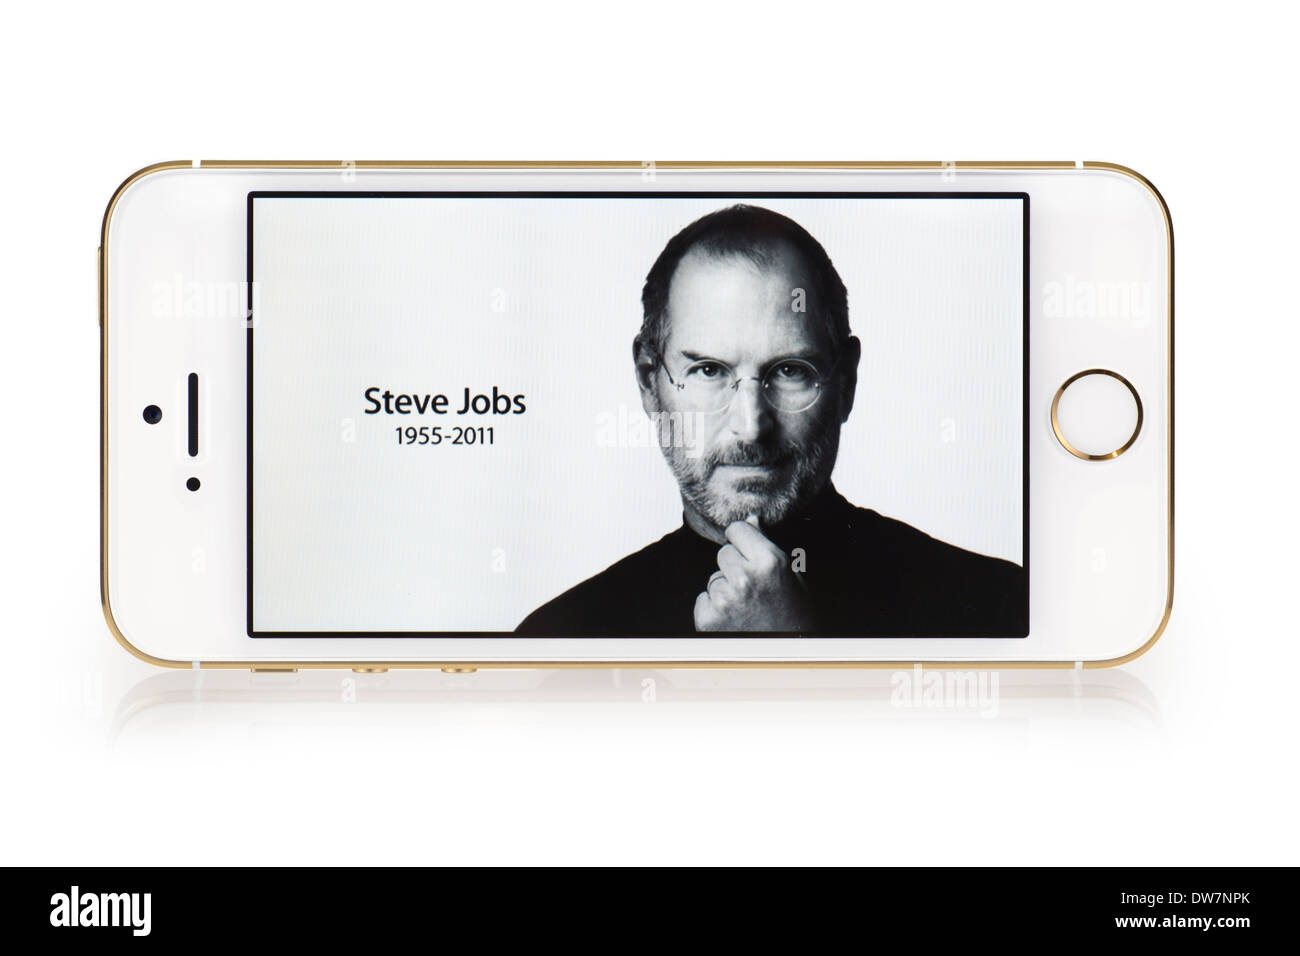 Steve Jobs image on iPhone 5S screen, iPhone 5 S White Gold - Stock Image